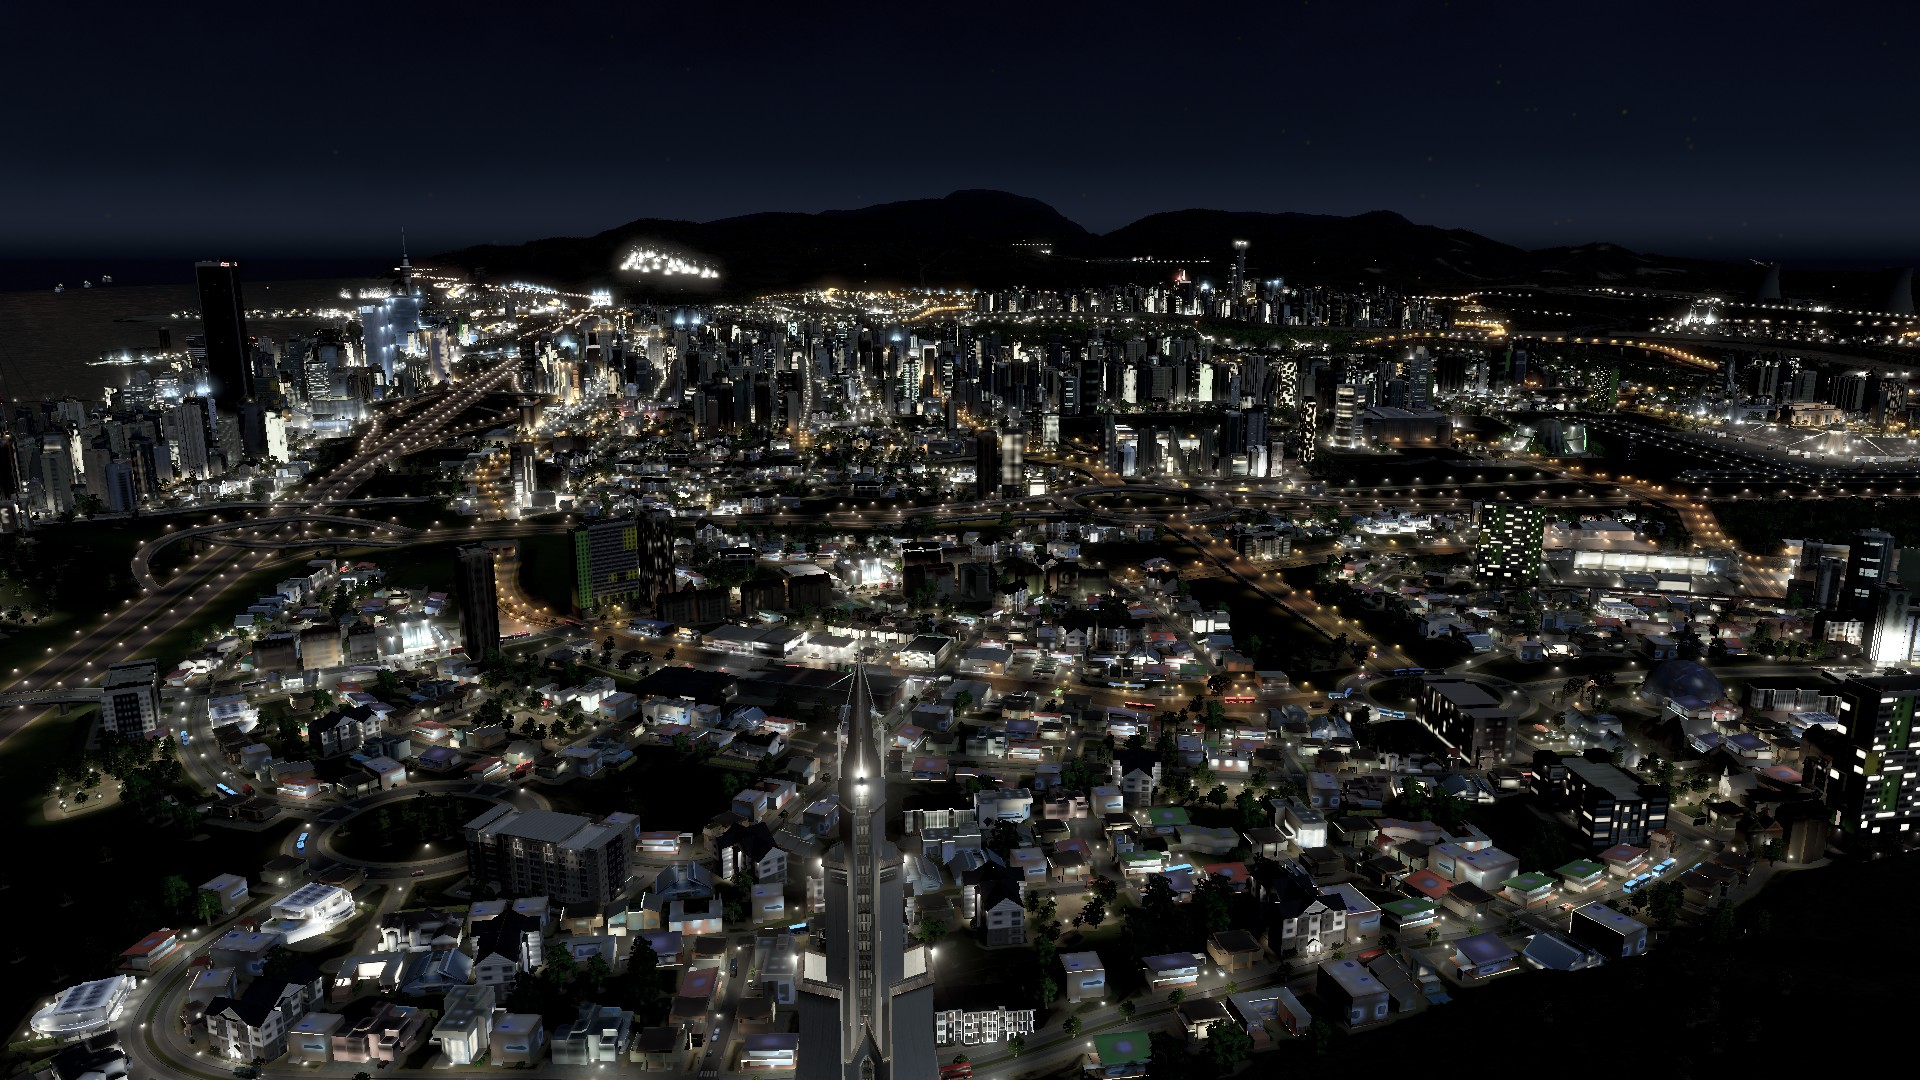 #CitiesSkylines Night Shots an Art of Beauty